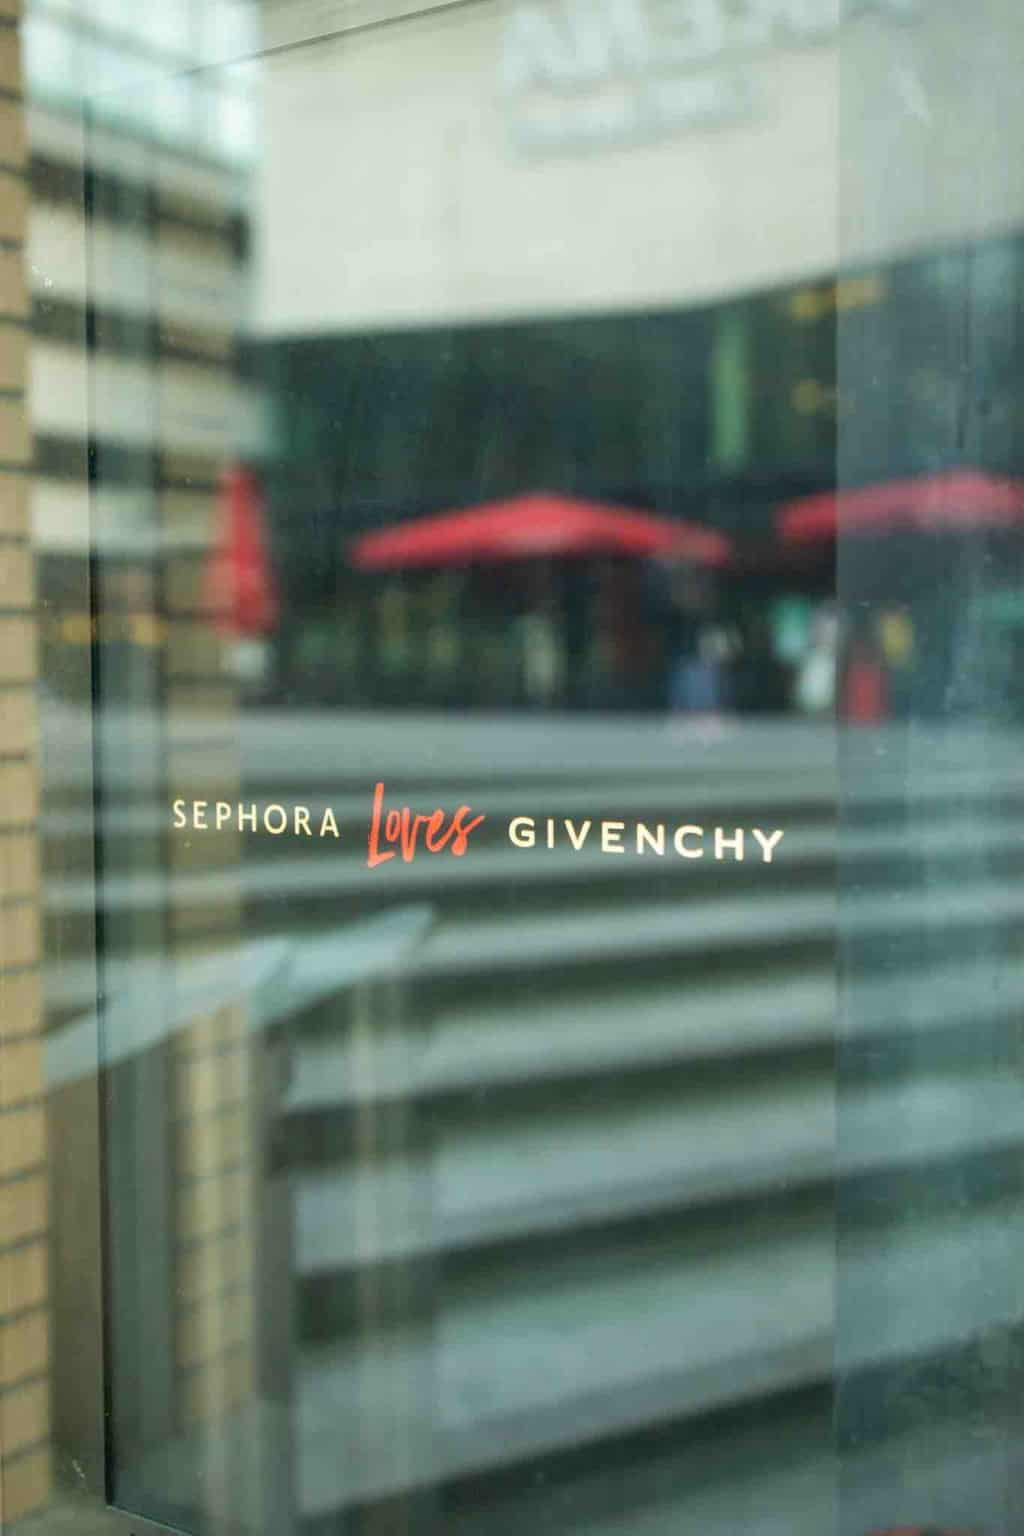 Givenchy Make Up, Beauty & Perfume Now at Sephora Switzerland